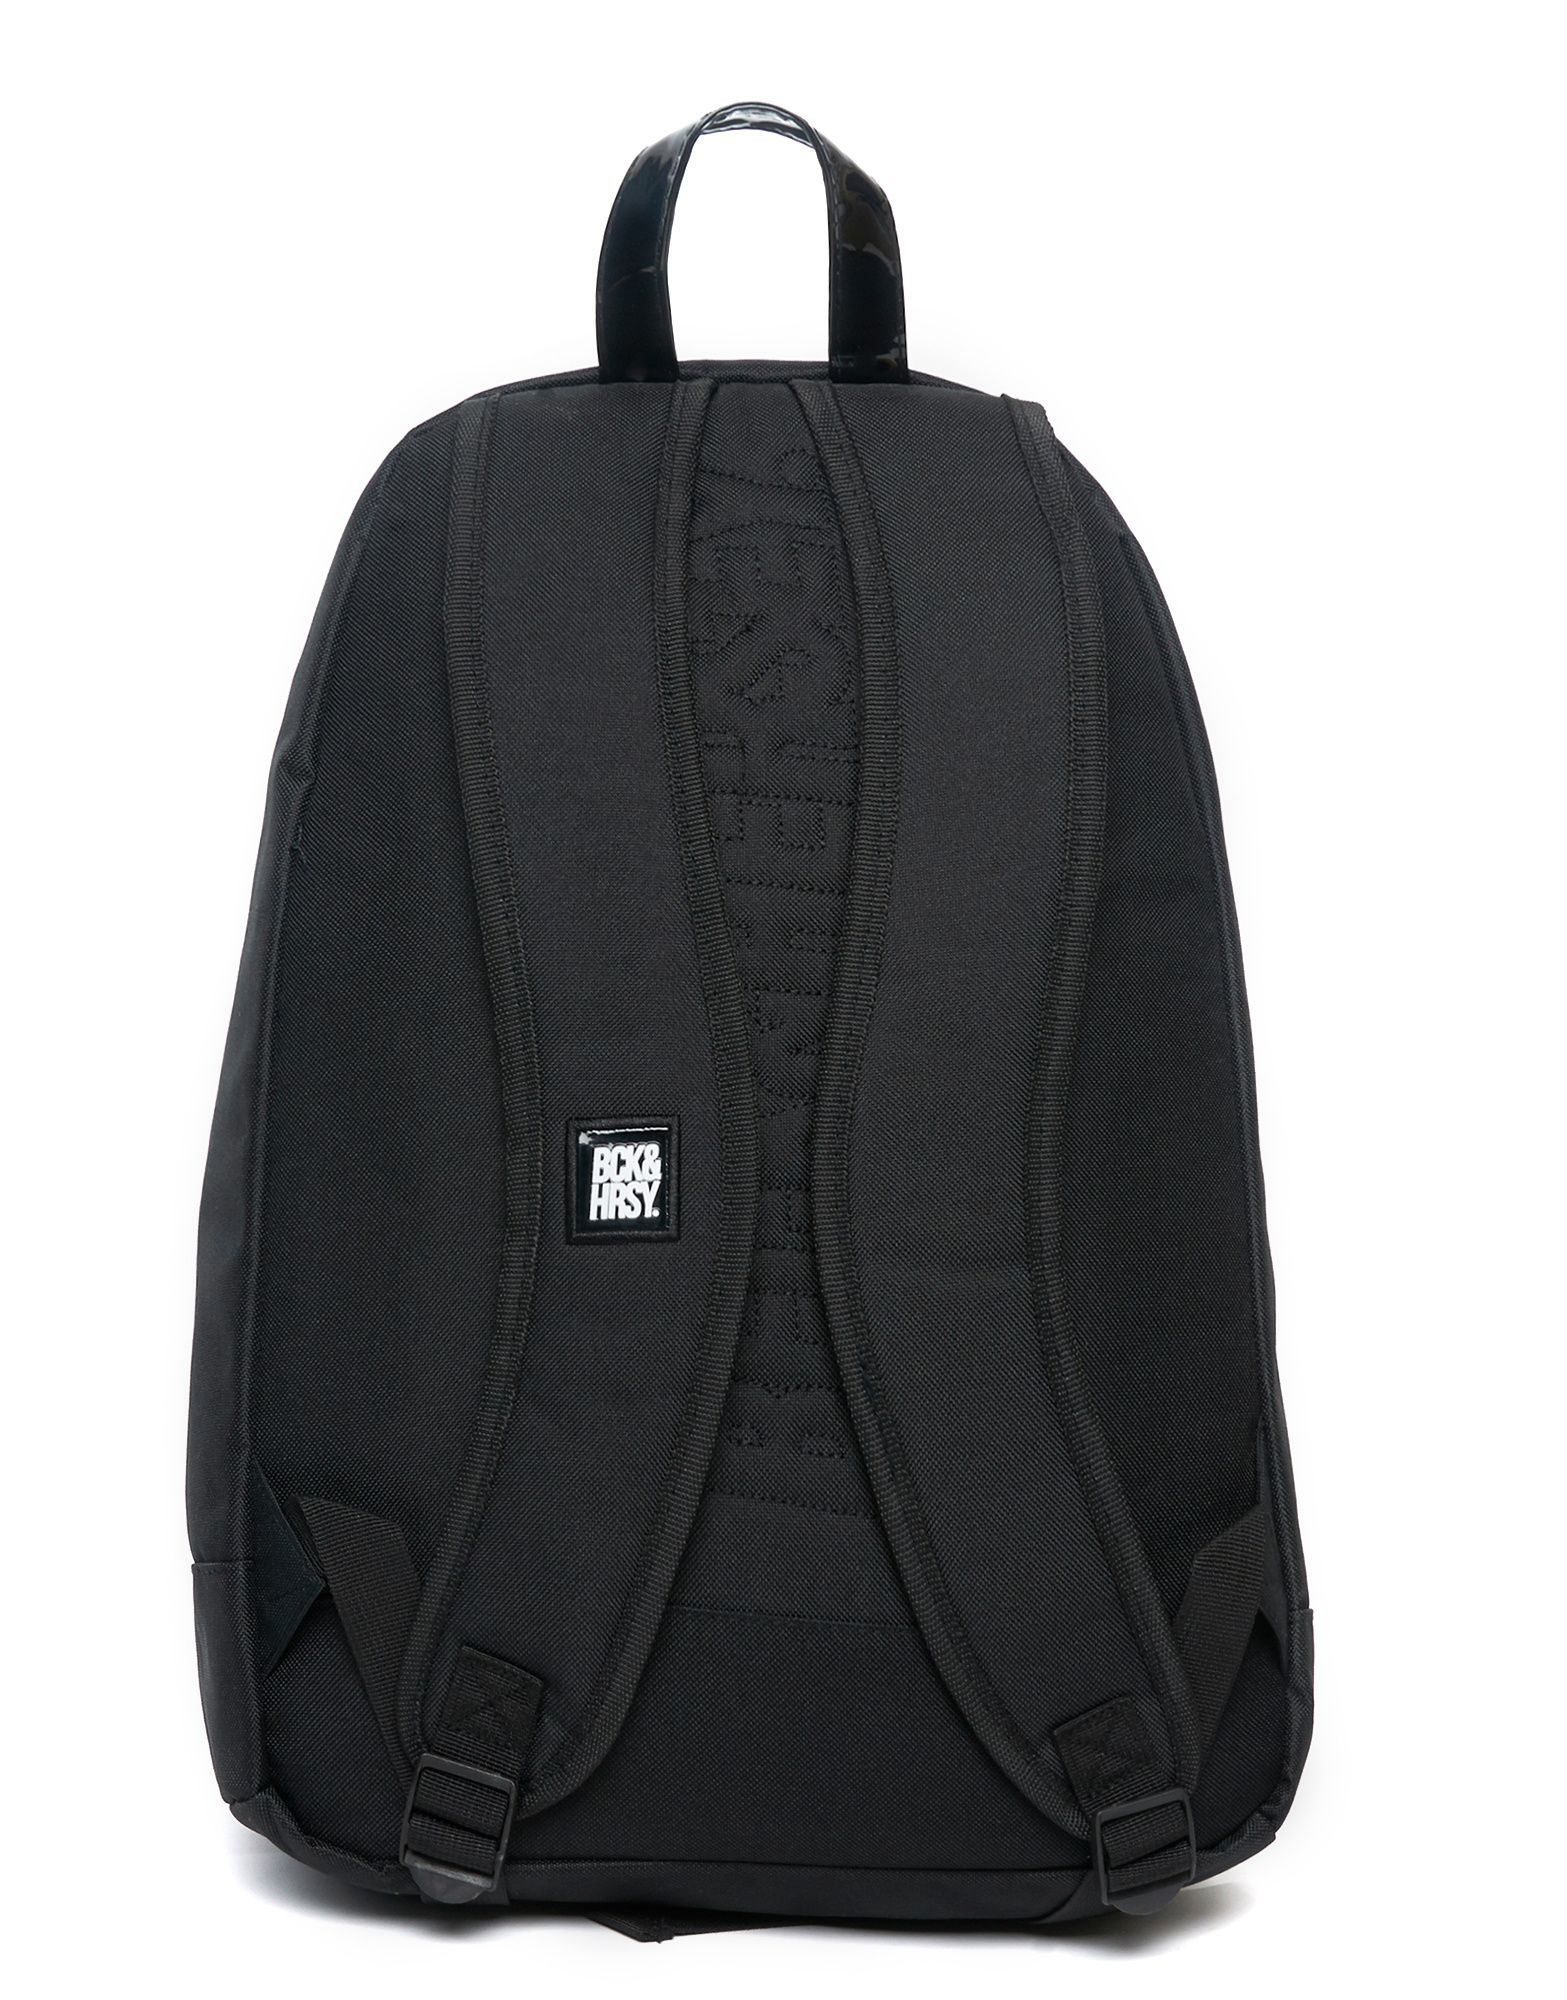 Beck and Hersey Freshness Backpack